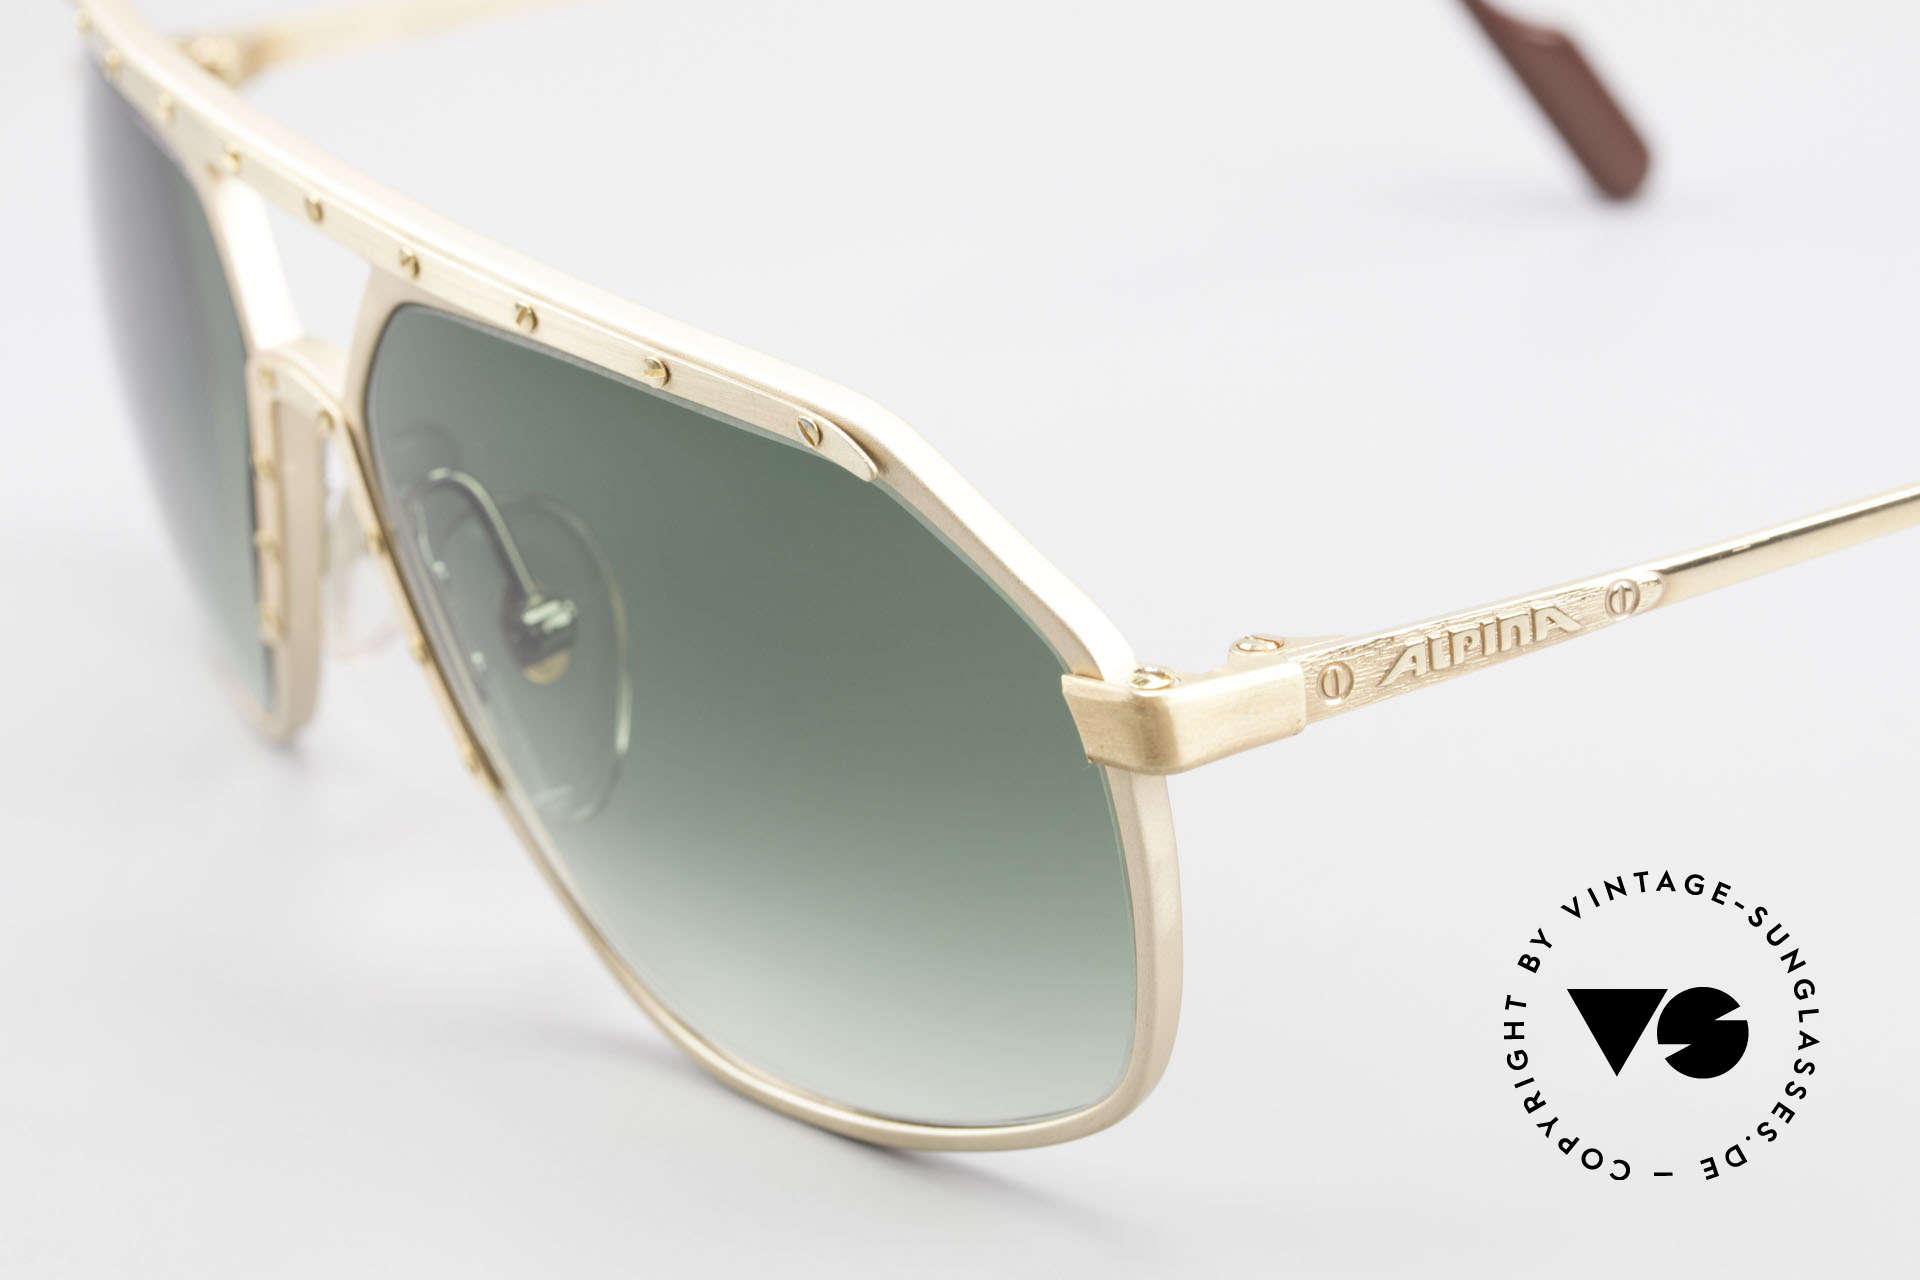 Alpina M6 Legendary 80's Sunglasses, the Alpina M6's were made between 1987 and 1991, Made for Men